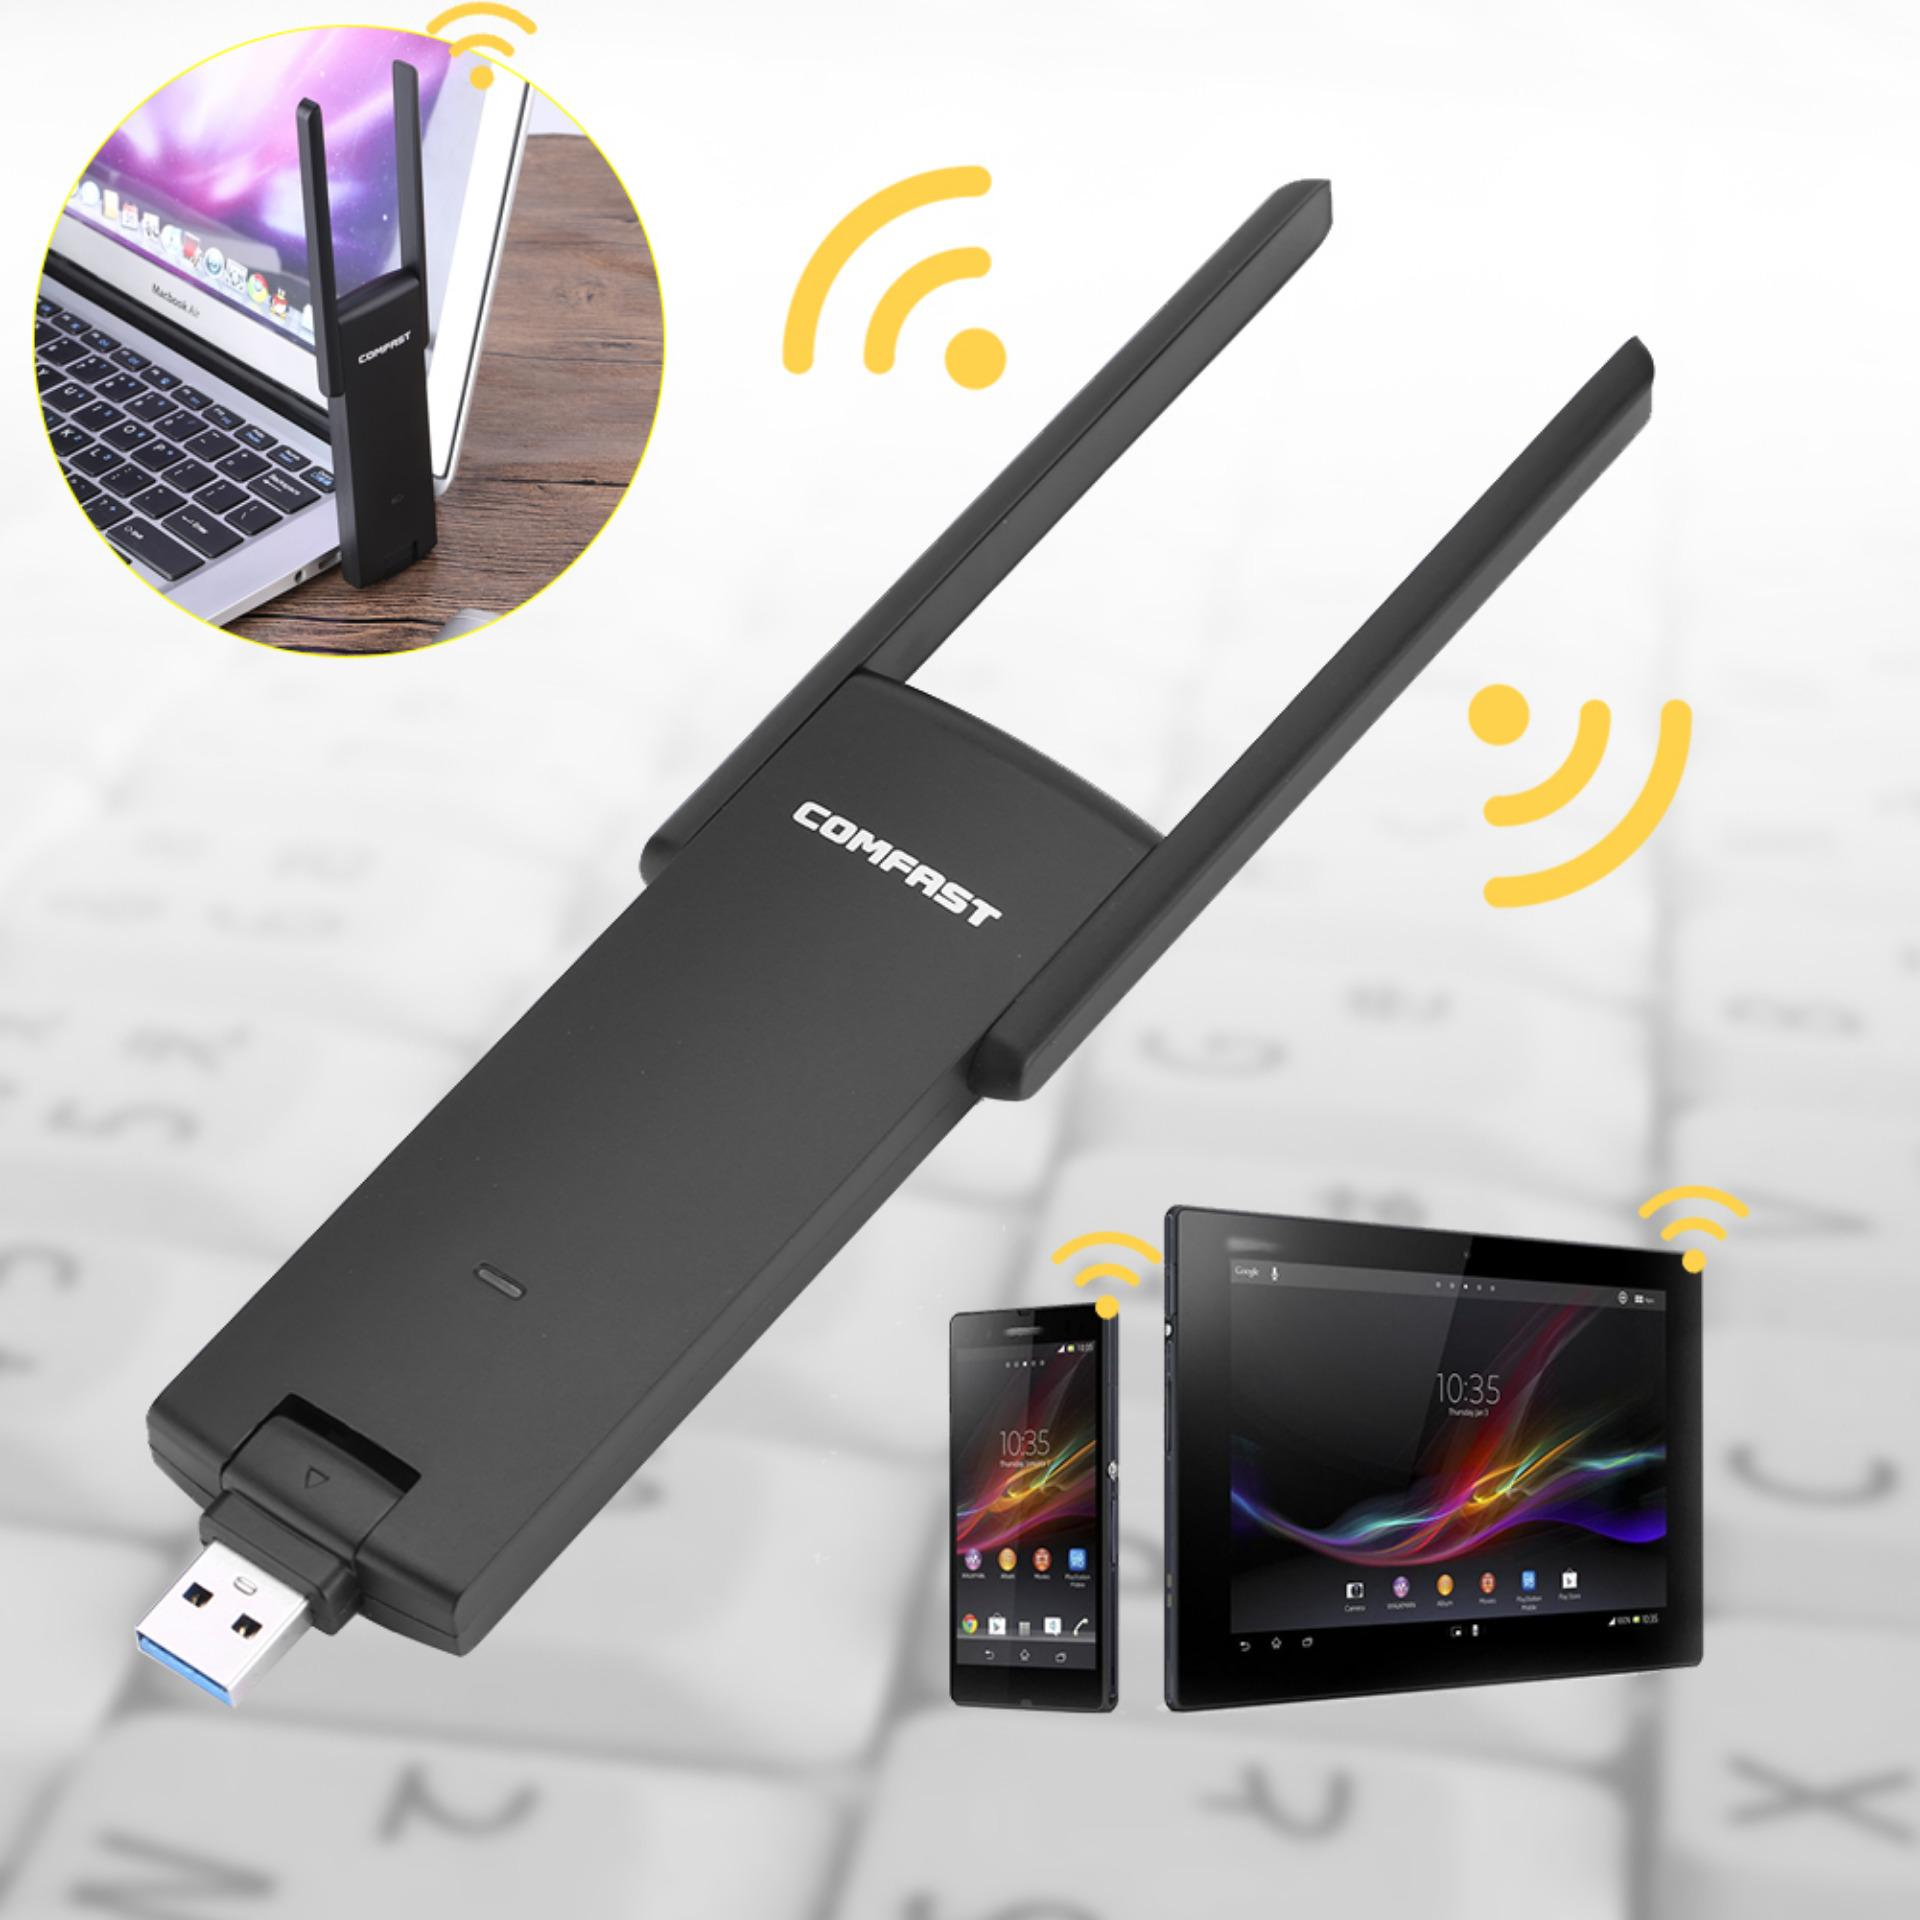 Comfast 2.4g+5ghz Dual Band Ac 1200m Wireless Signal Usb3.0 Wifi Speed Adapter Extender - Intl By 1buycart.